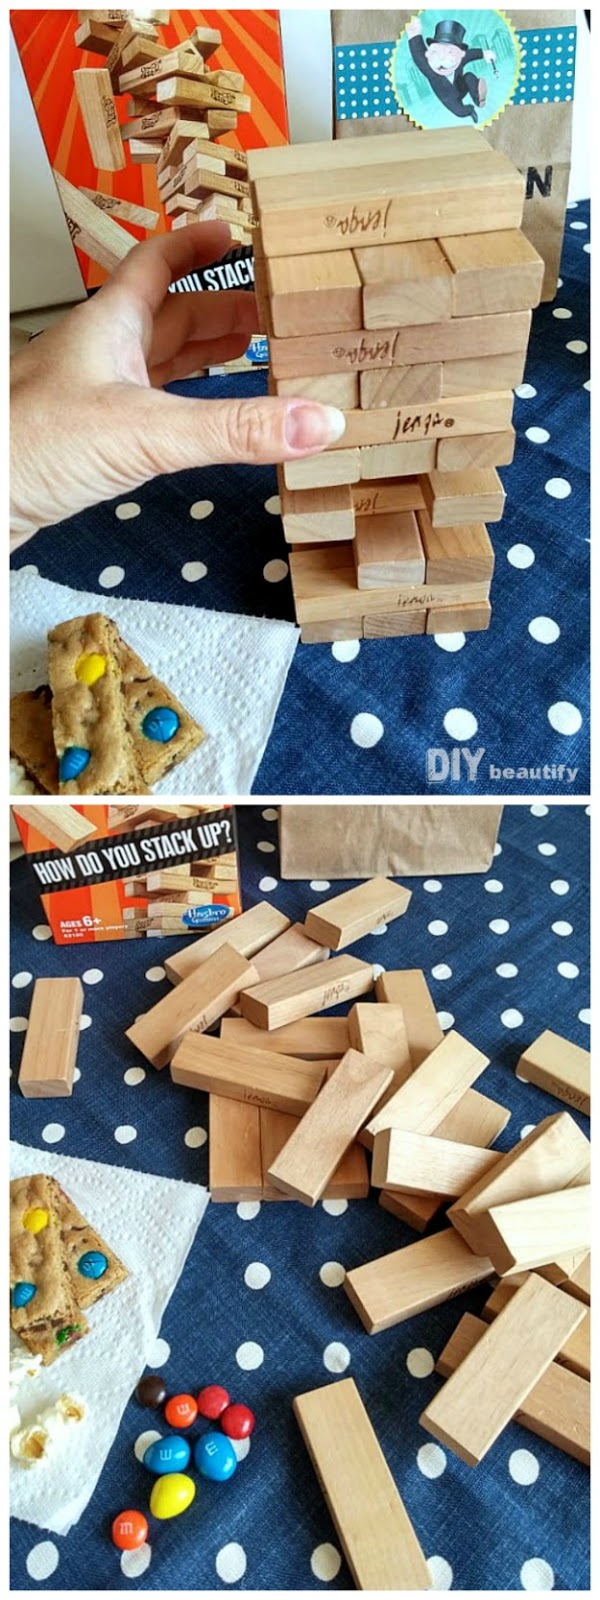 Bake up some easy treats, pull out the board games and spend some quality time with your kids! Find these awesome ideas at DIY beautify